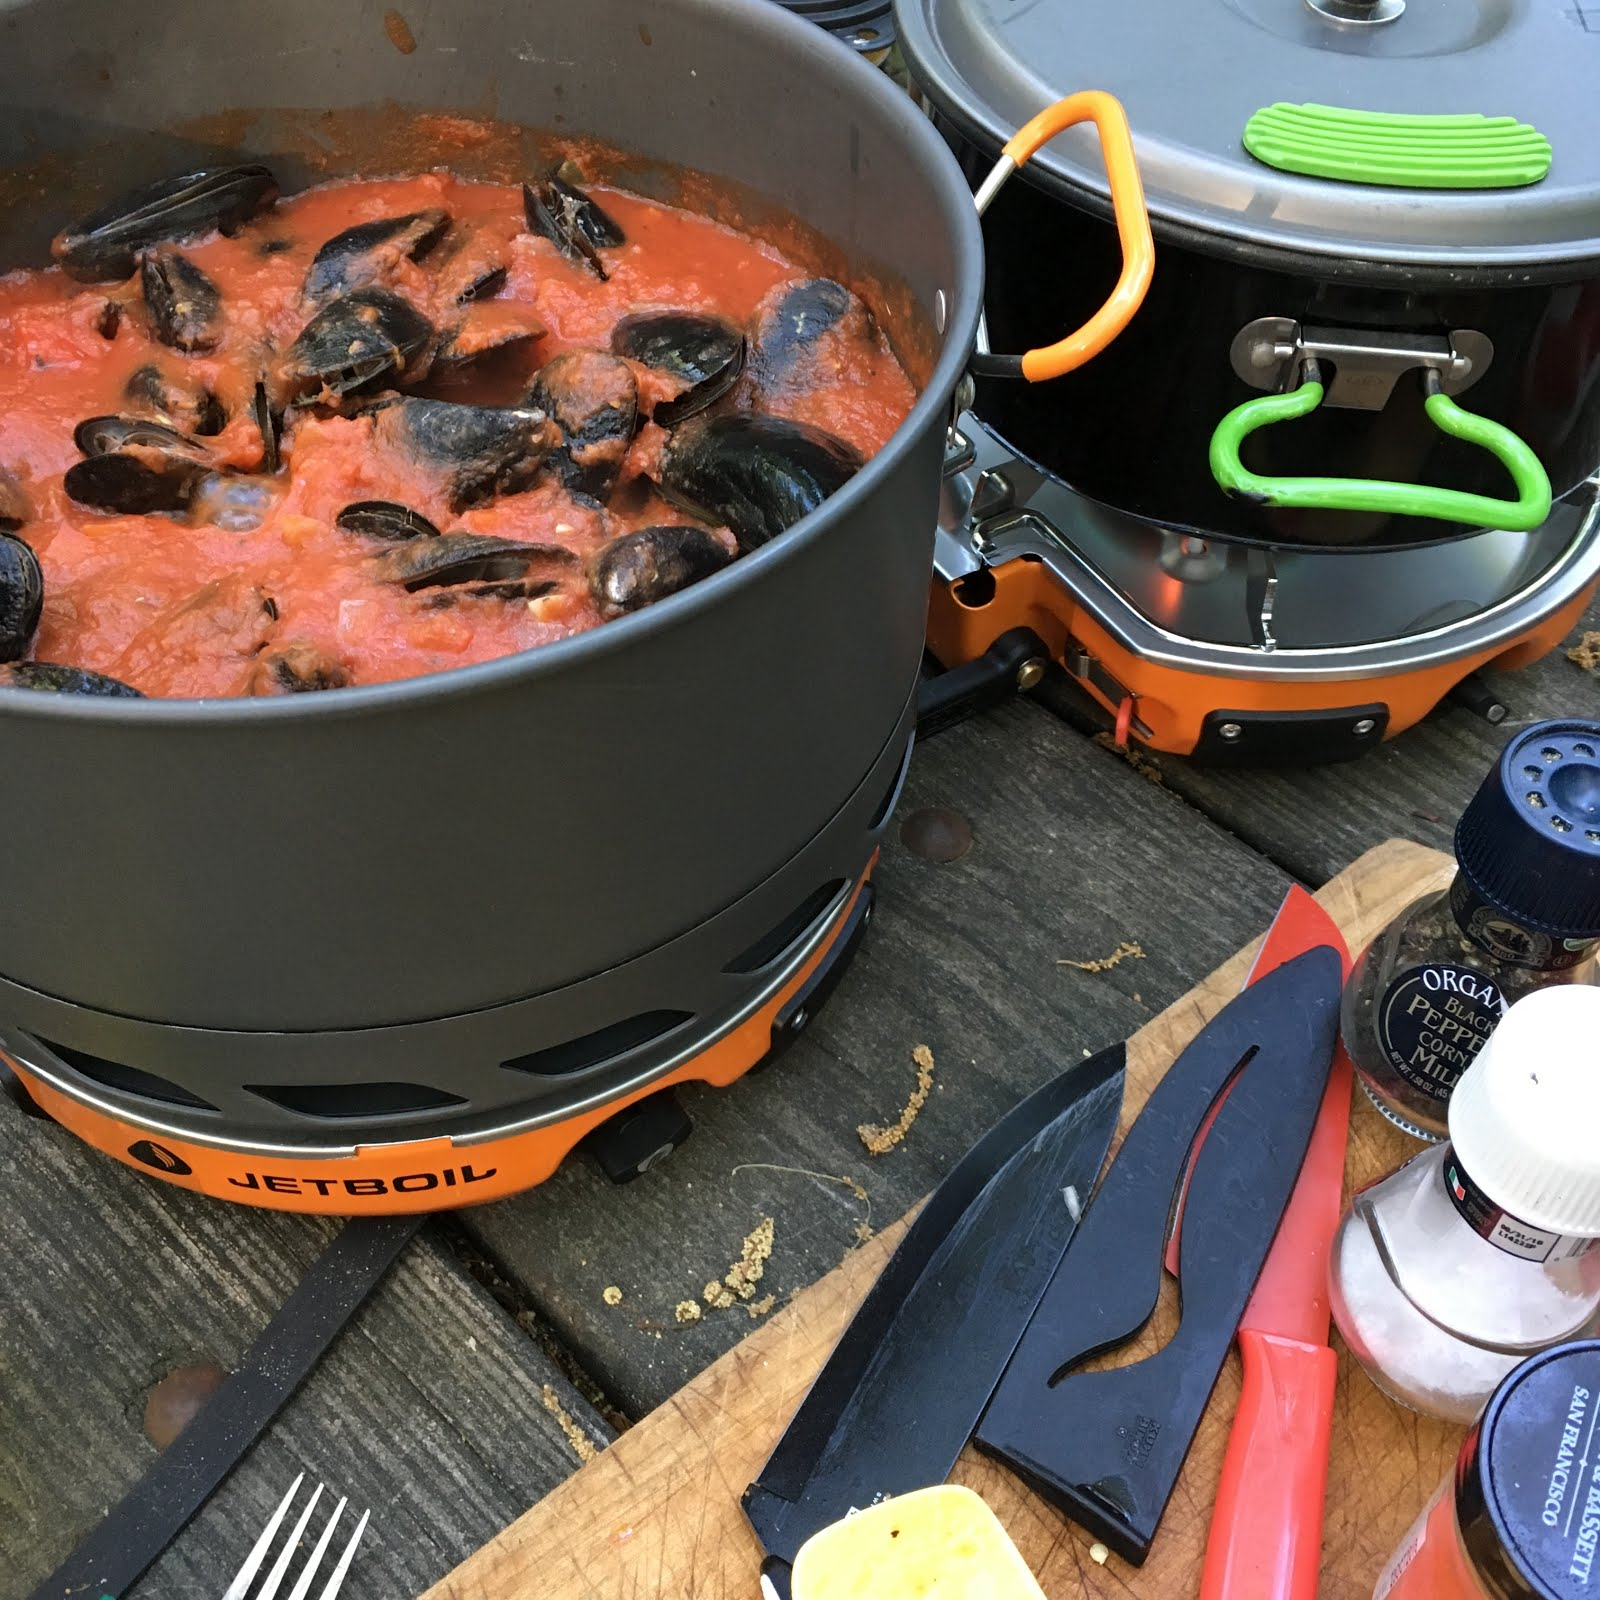 Paddling Otaku: Pack and Go! or Hell NO! Jetboil Genesis Gear review